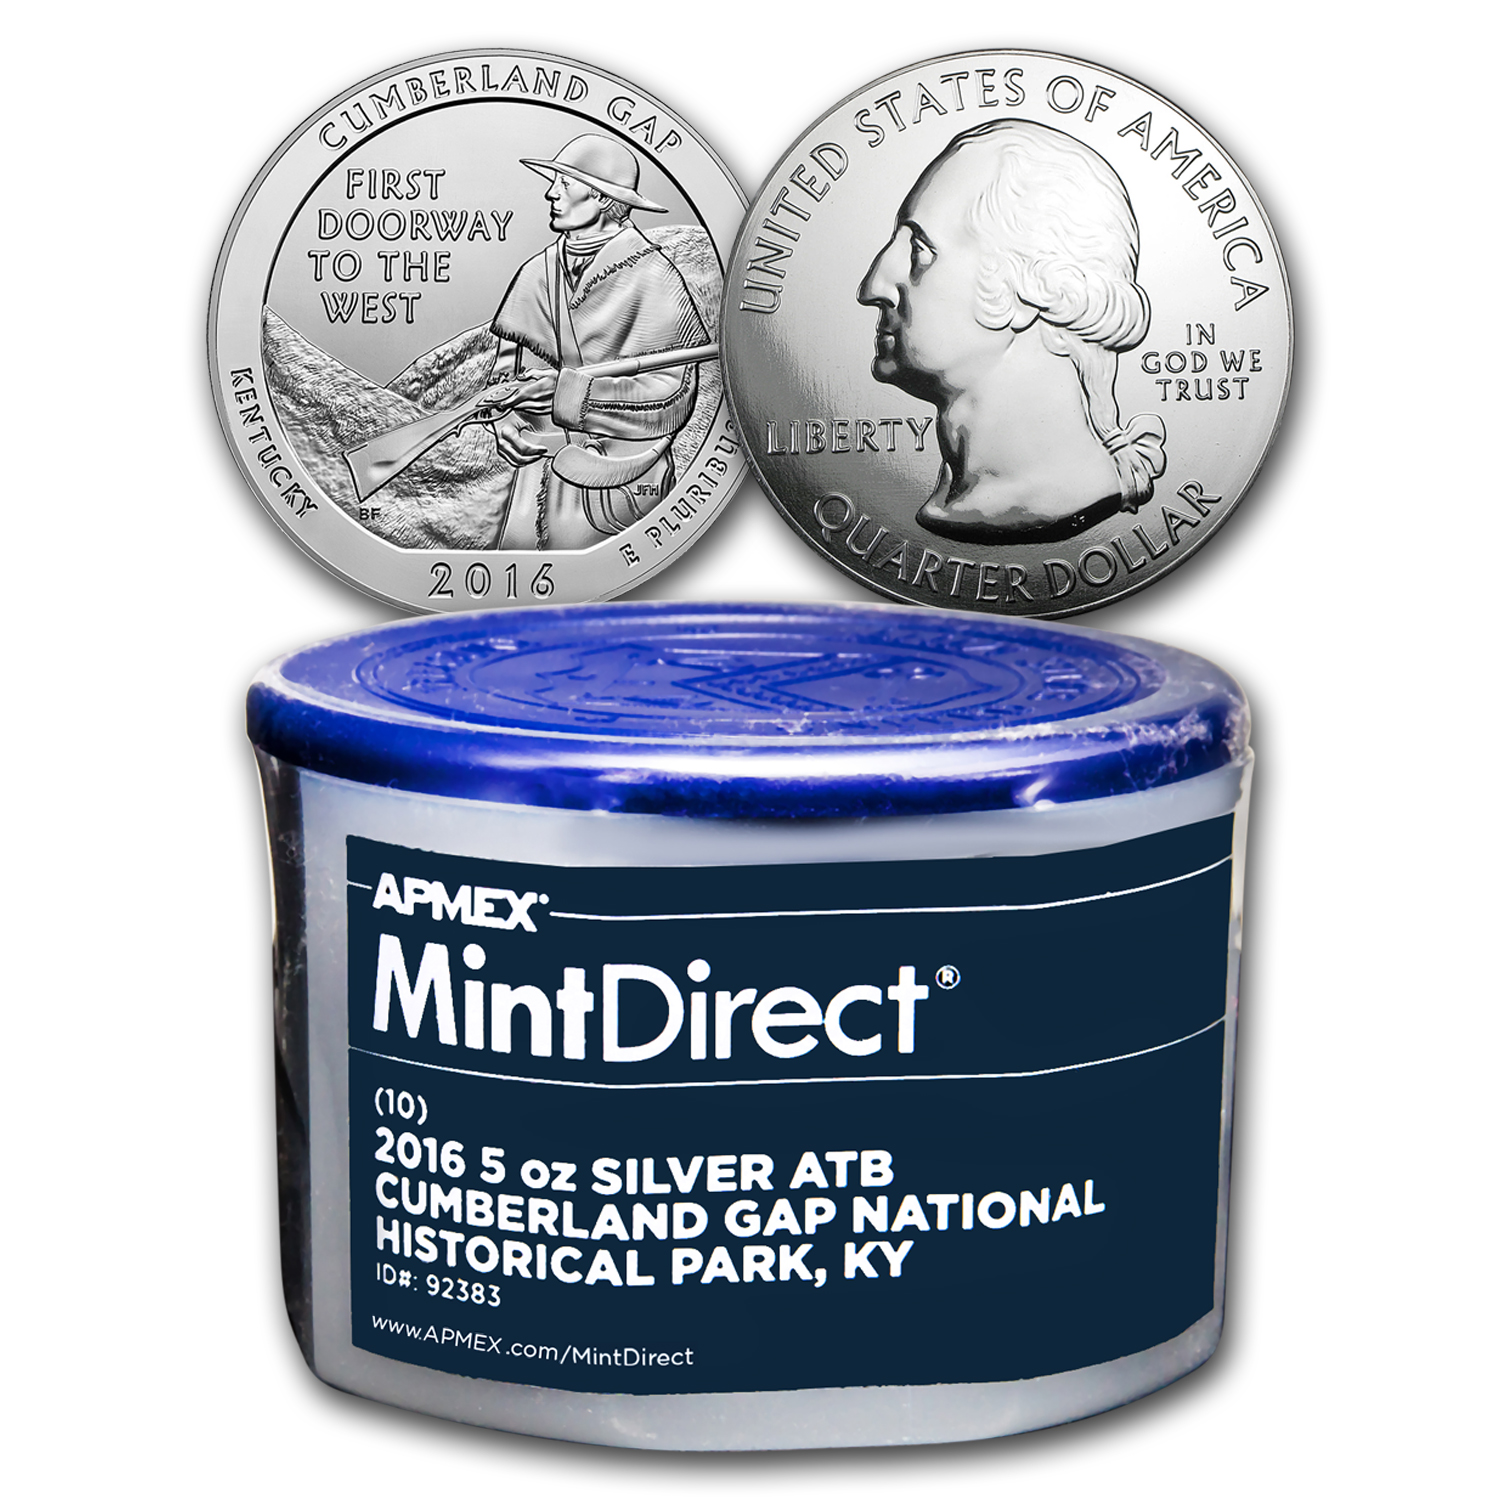 2016 5 oz Silver ATB Cumberland Gap (10-Coin MintDirect® Tube)